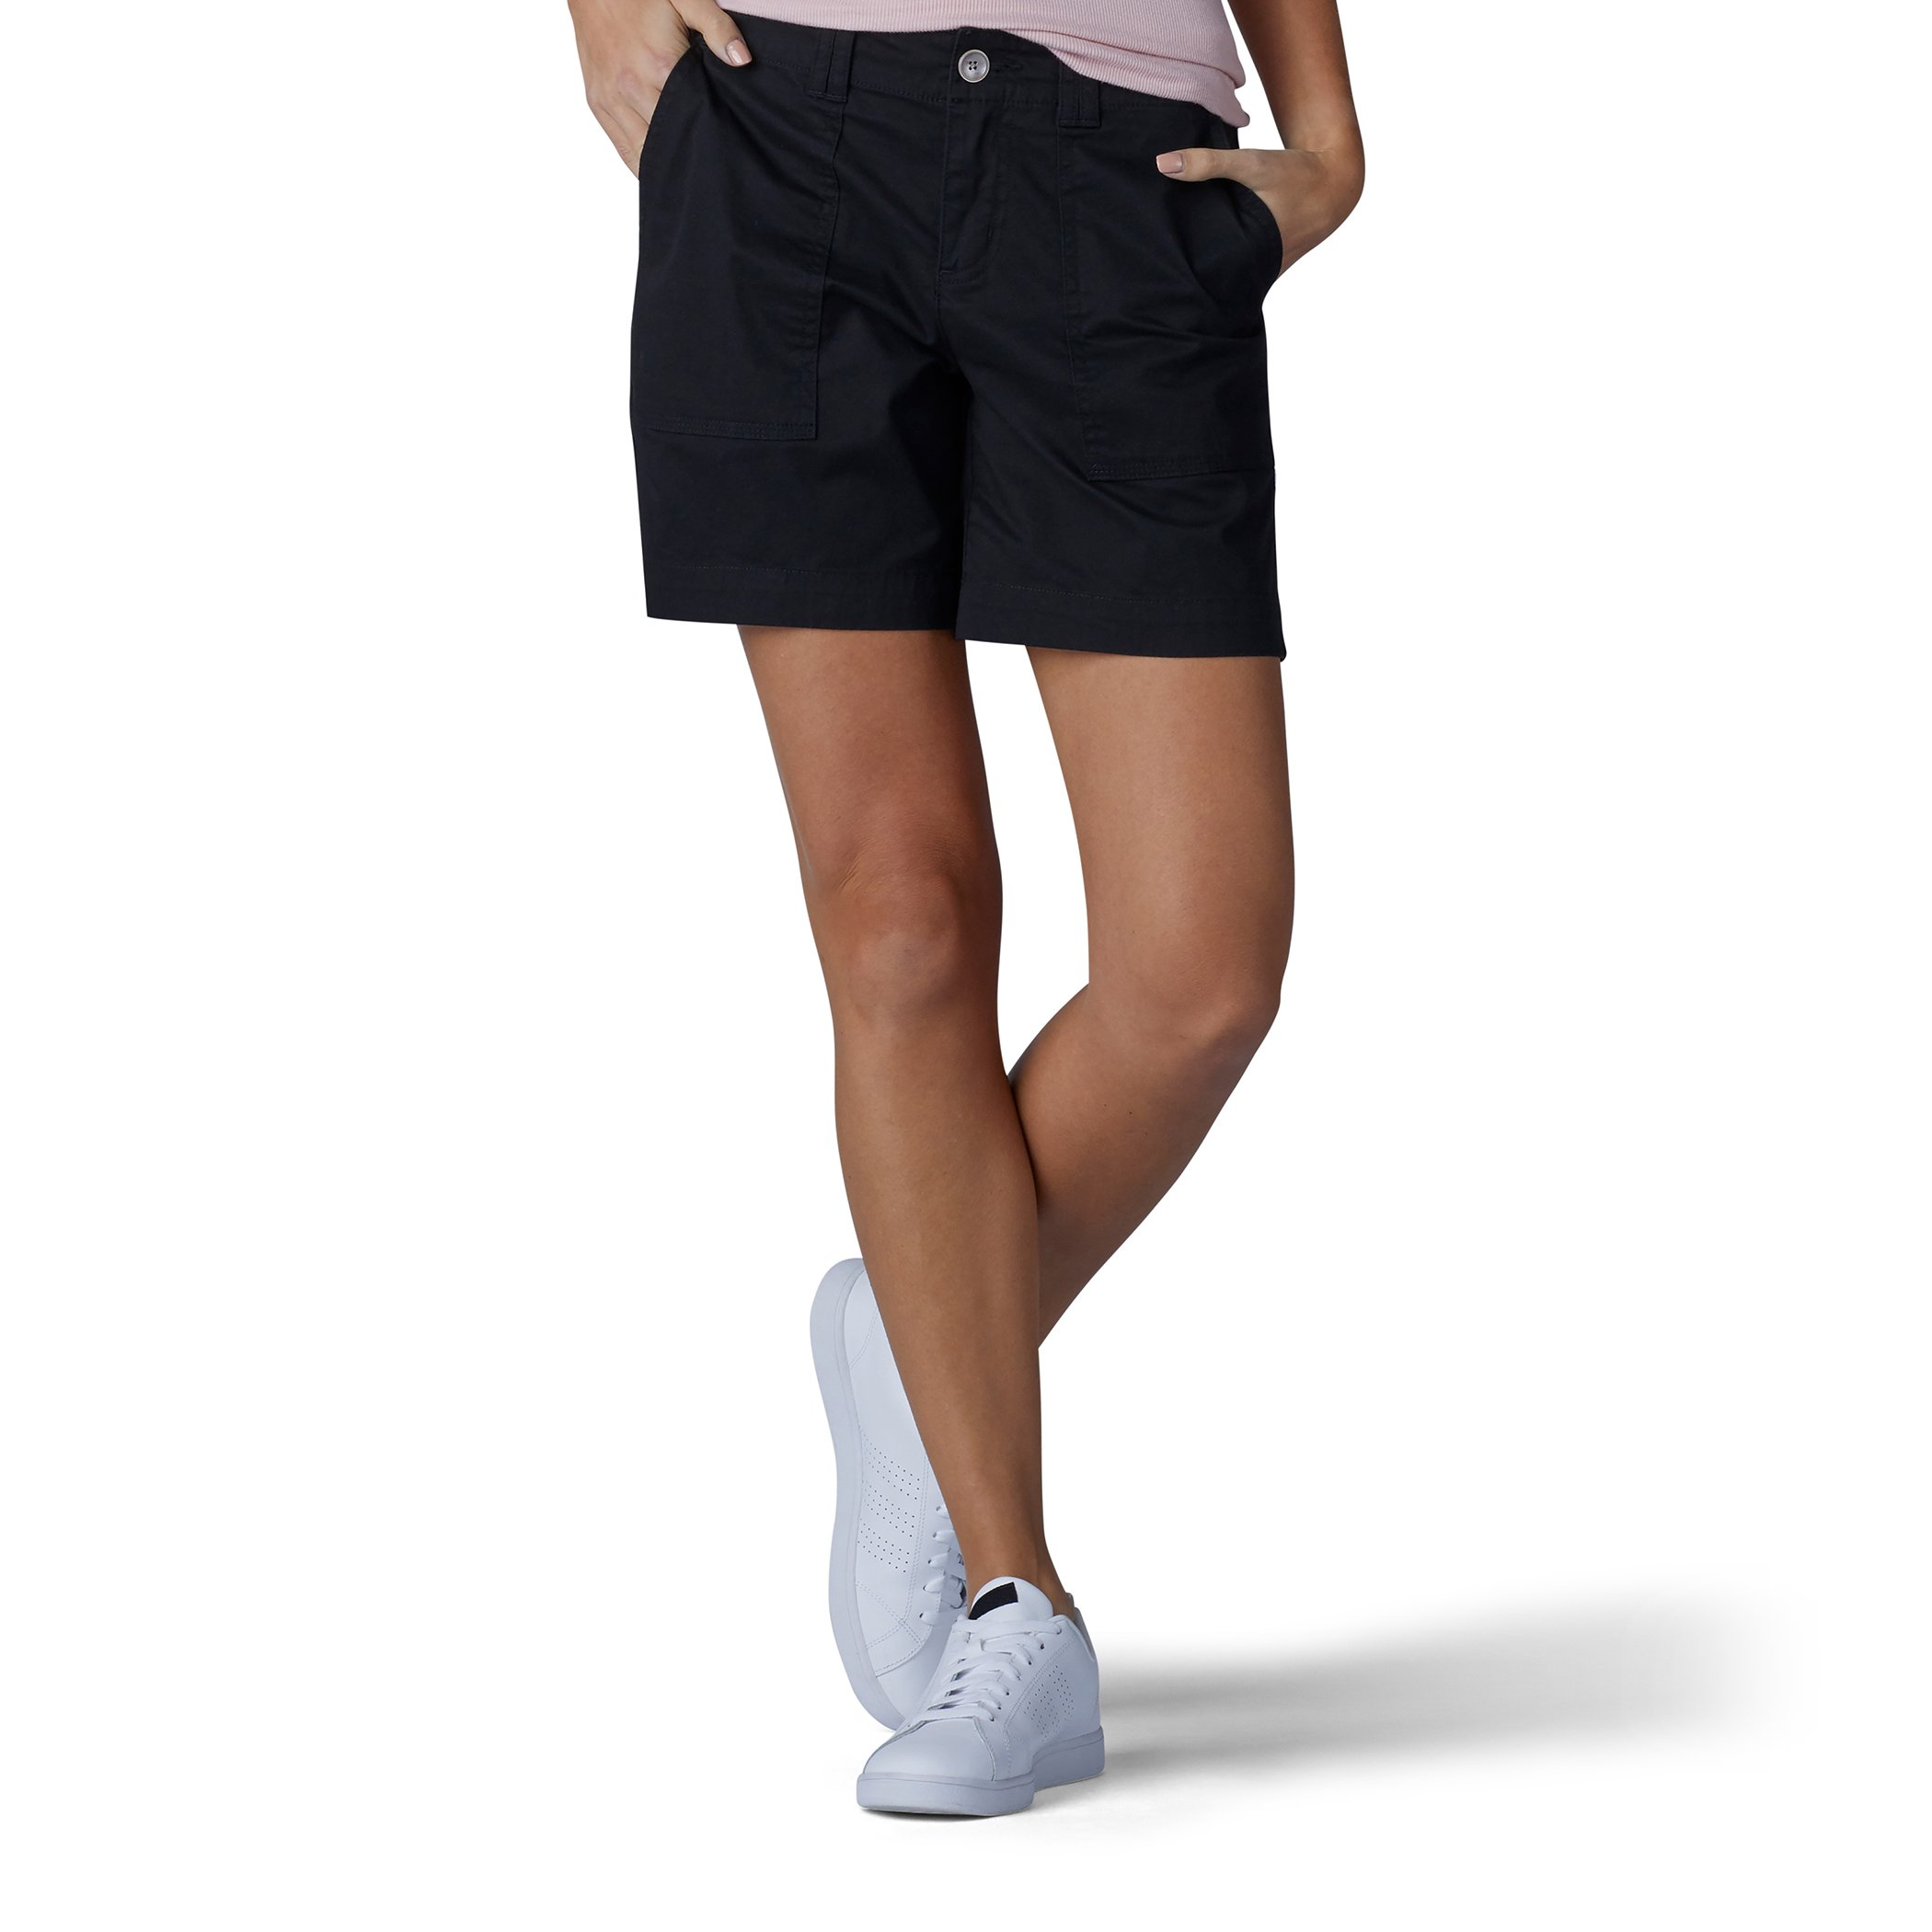 LEE Women's Straight Fit Kinsey Short, Black, 16